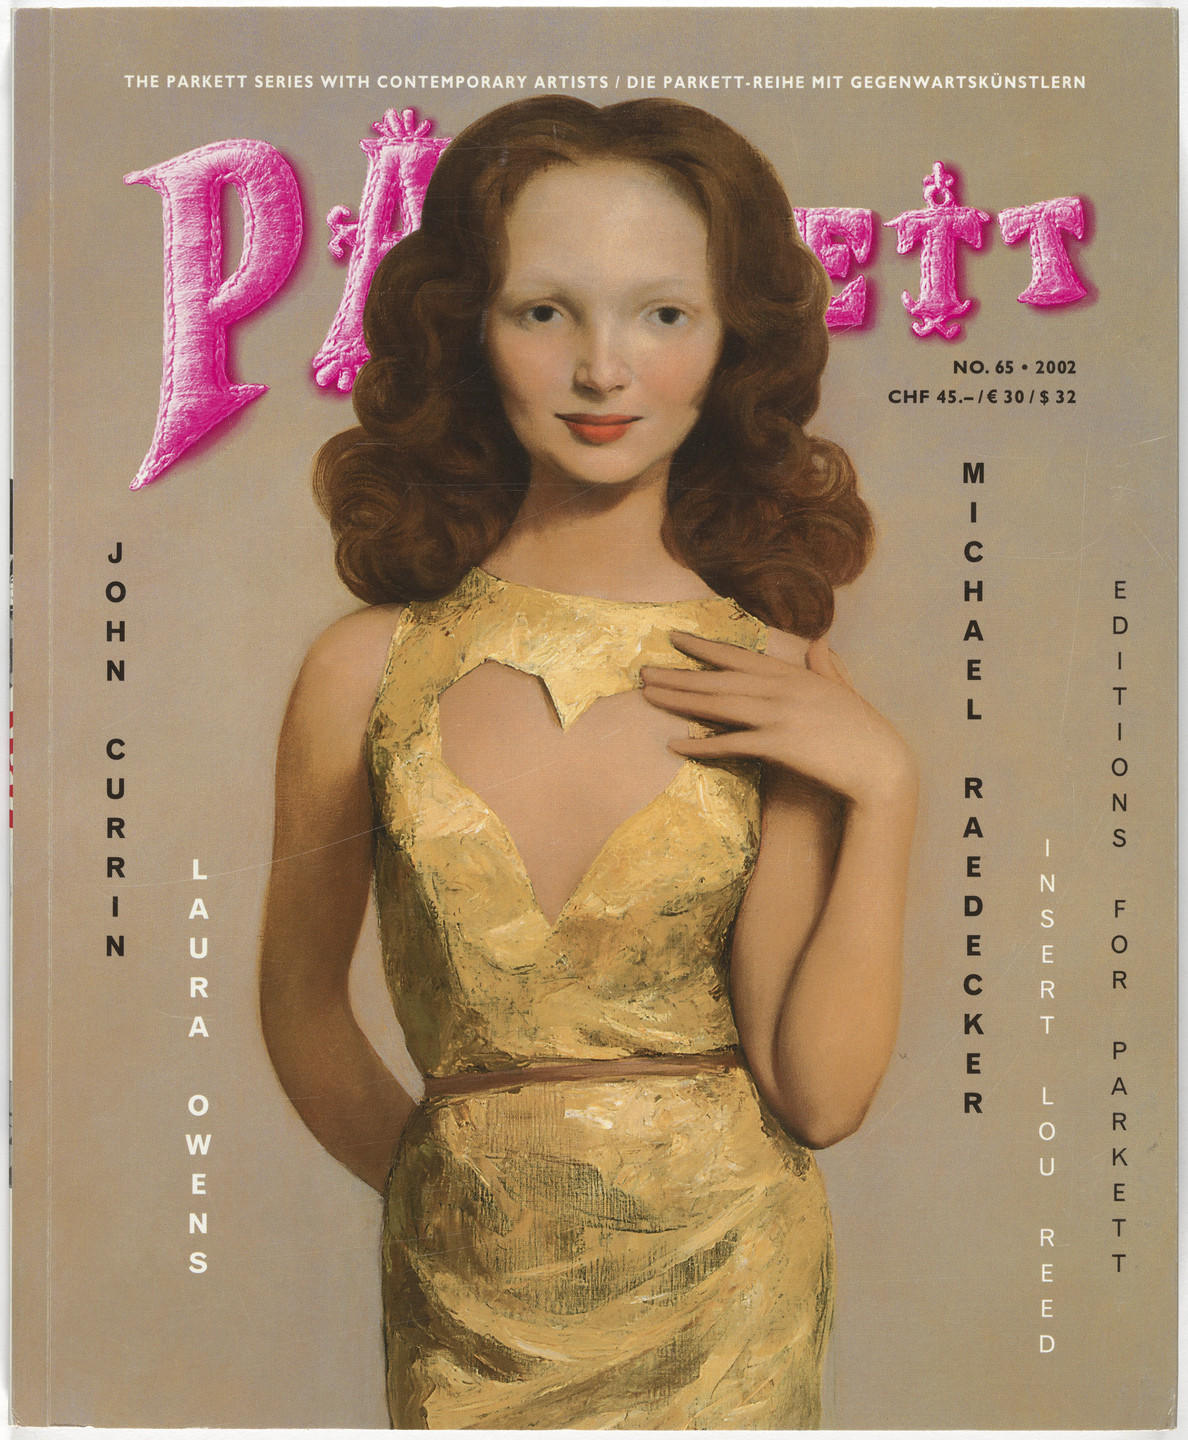 John Currin, Nic Hess, Laura Owens, Michael Raedecker, Lou Reed, Various Artists. Parkett no. 65. 2002